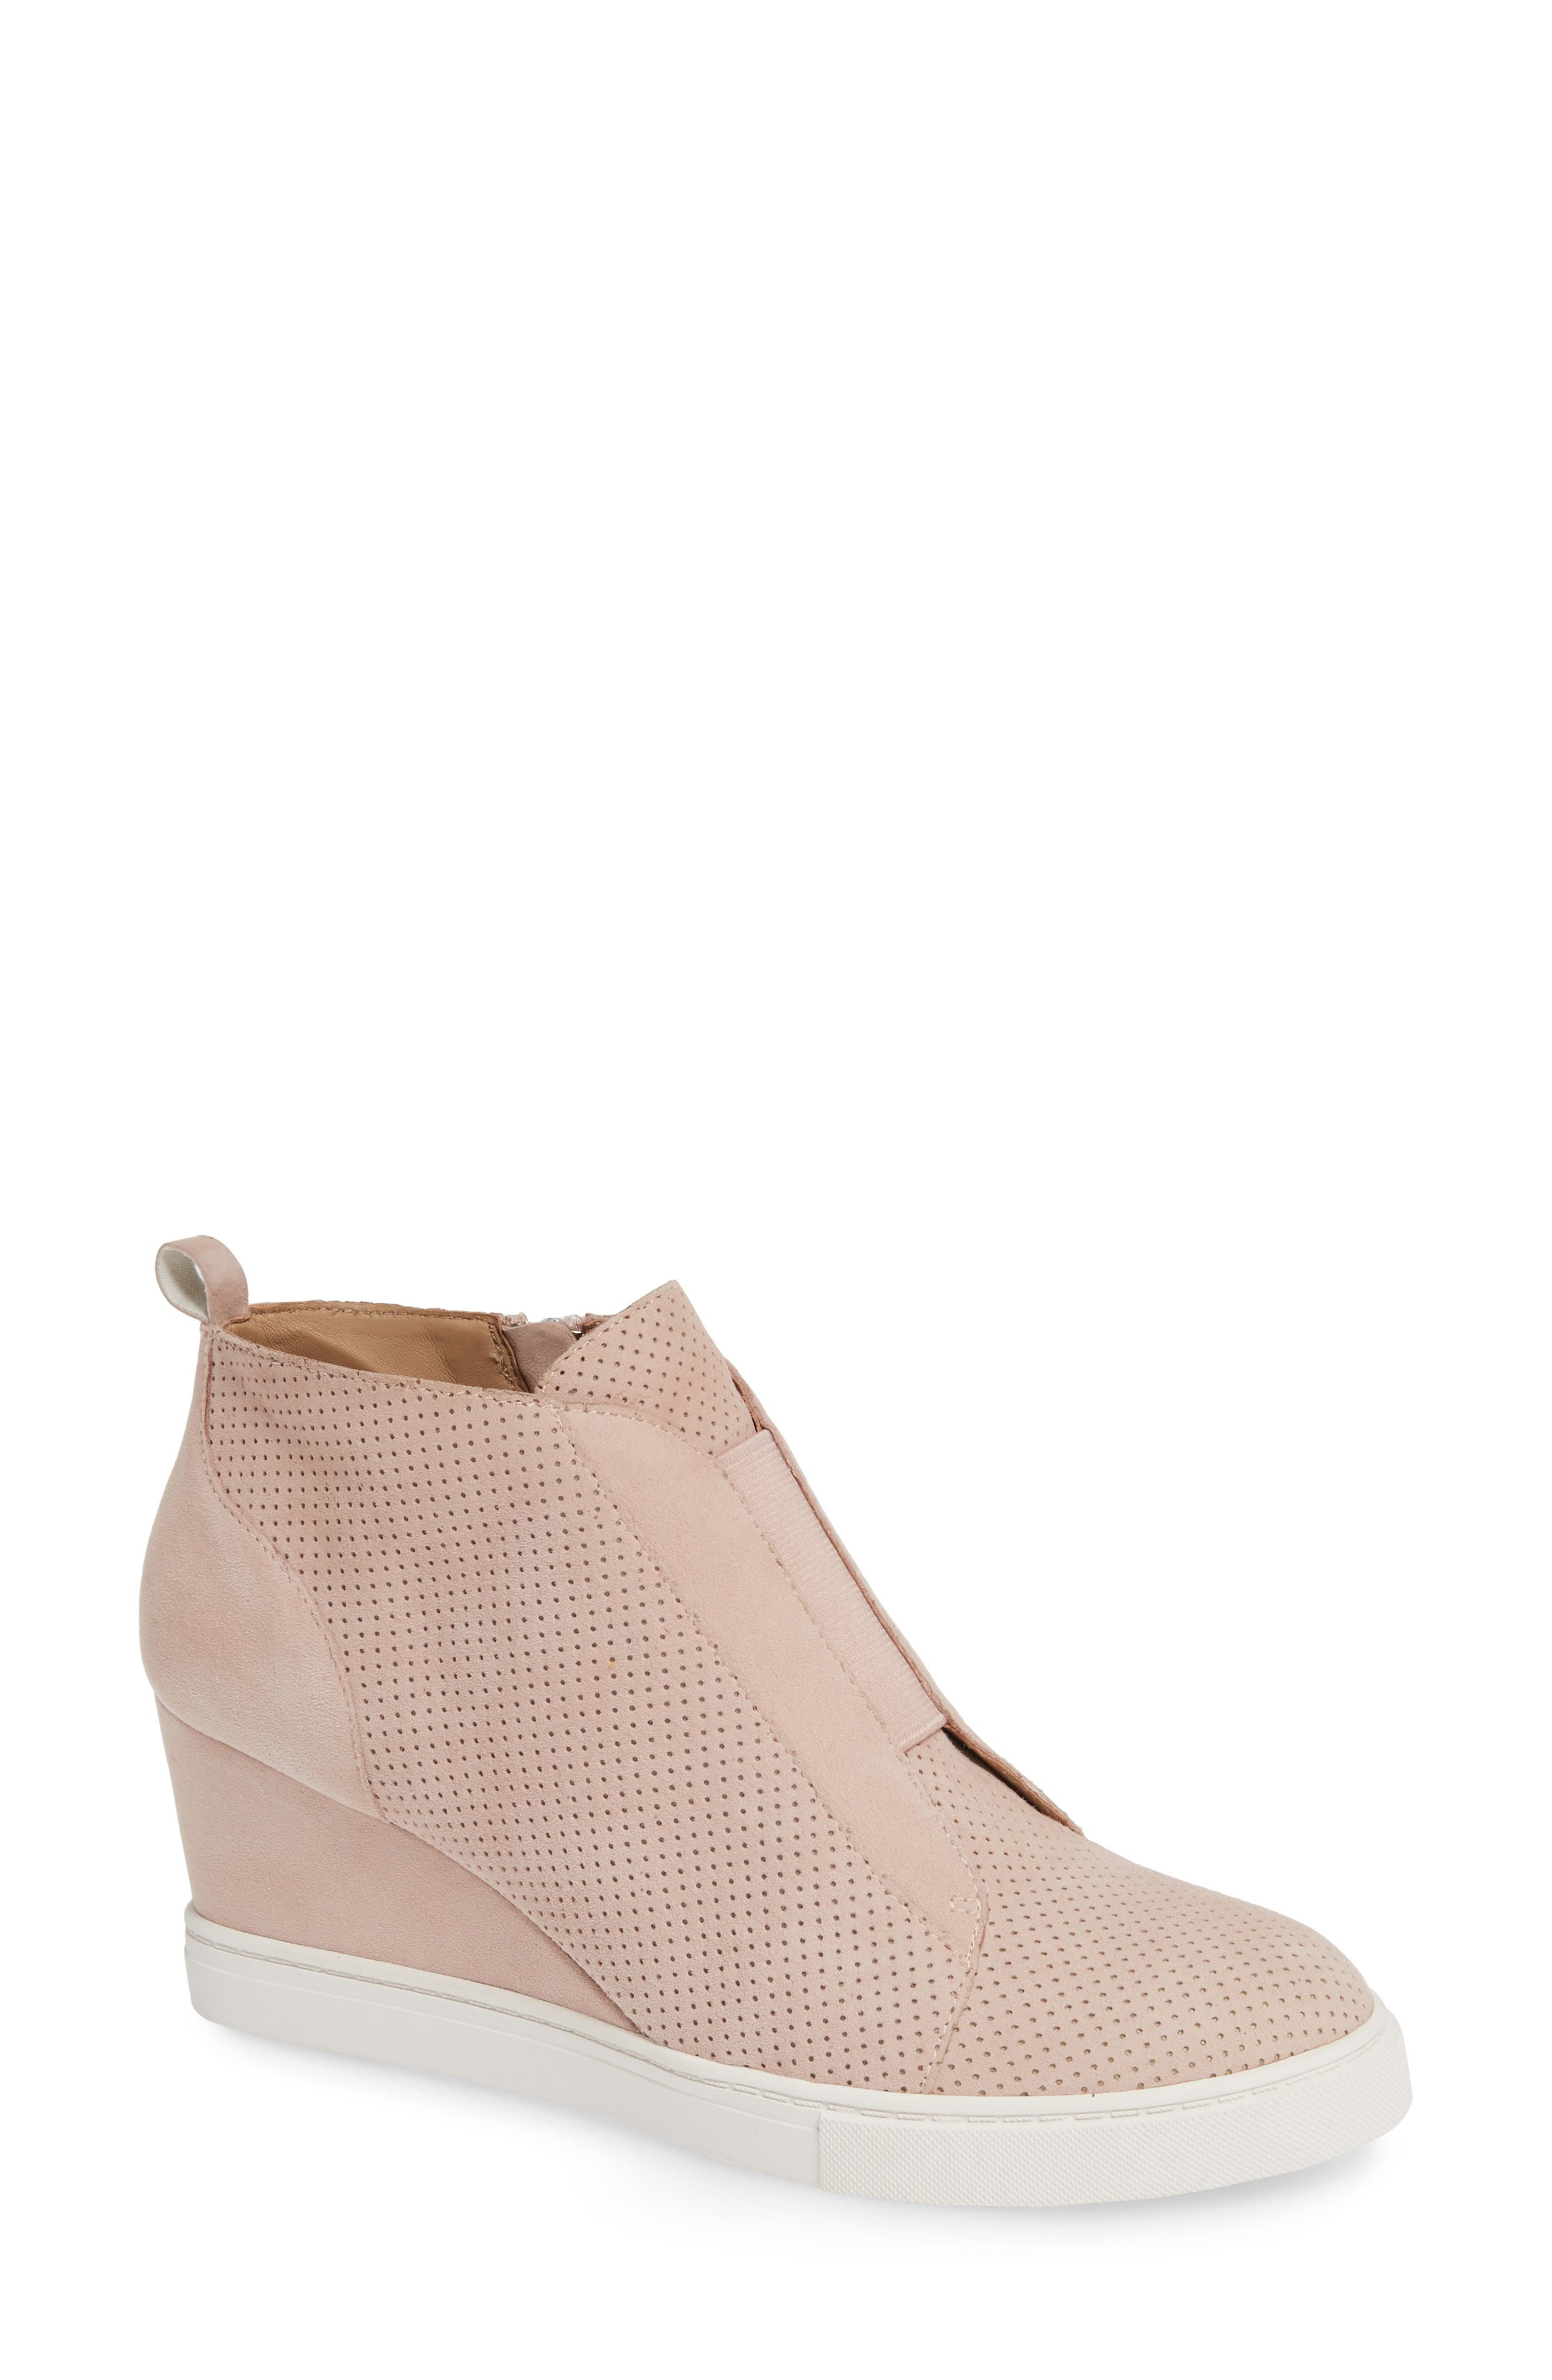 Felicia Wedge Bootie,                             Main thumbnail 1, color,                             BLUSH PERFORATED SUEDE